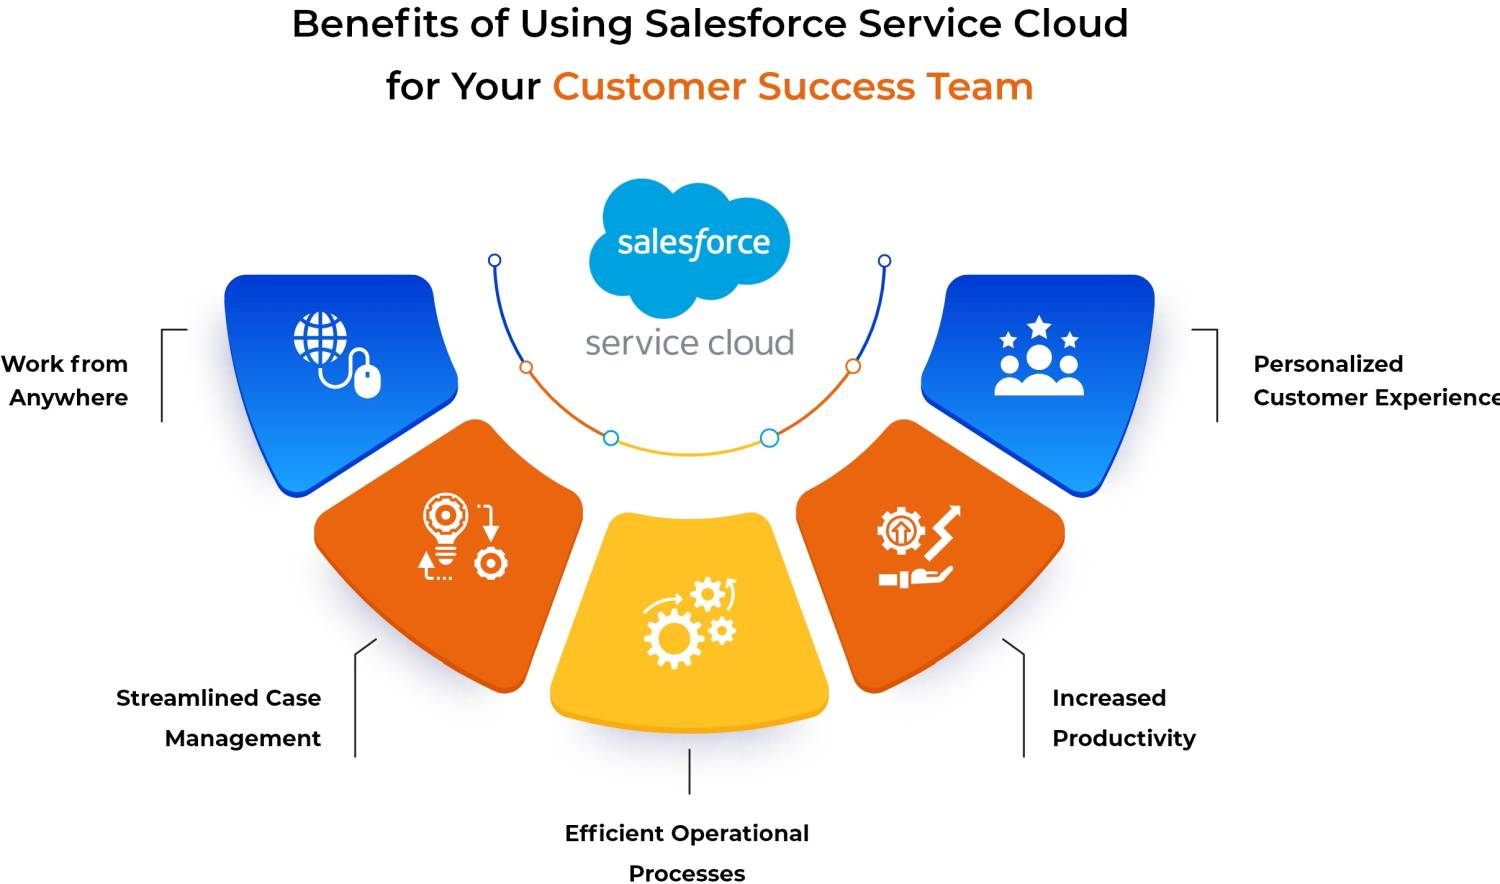 benefits of using salesforce service cloud infographic